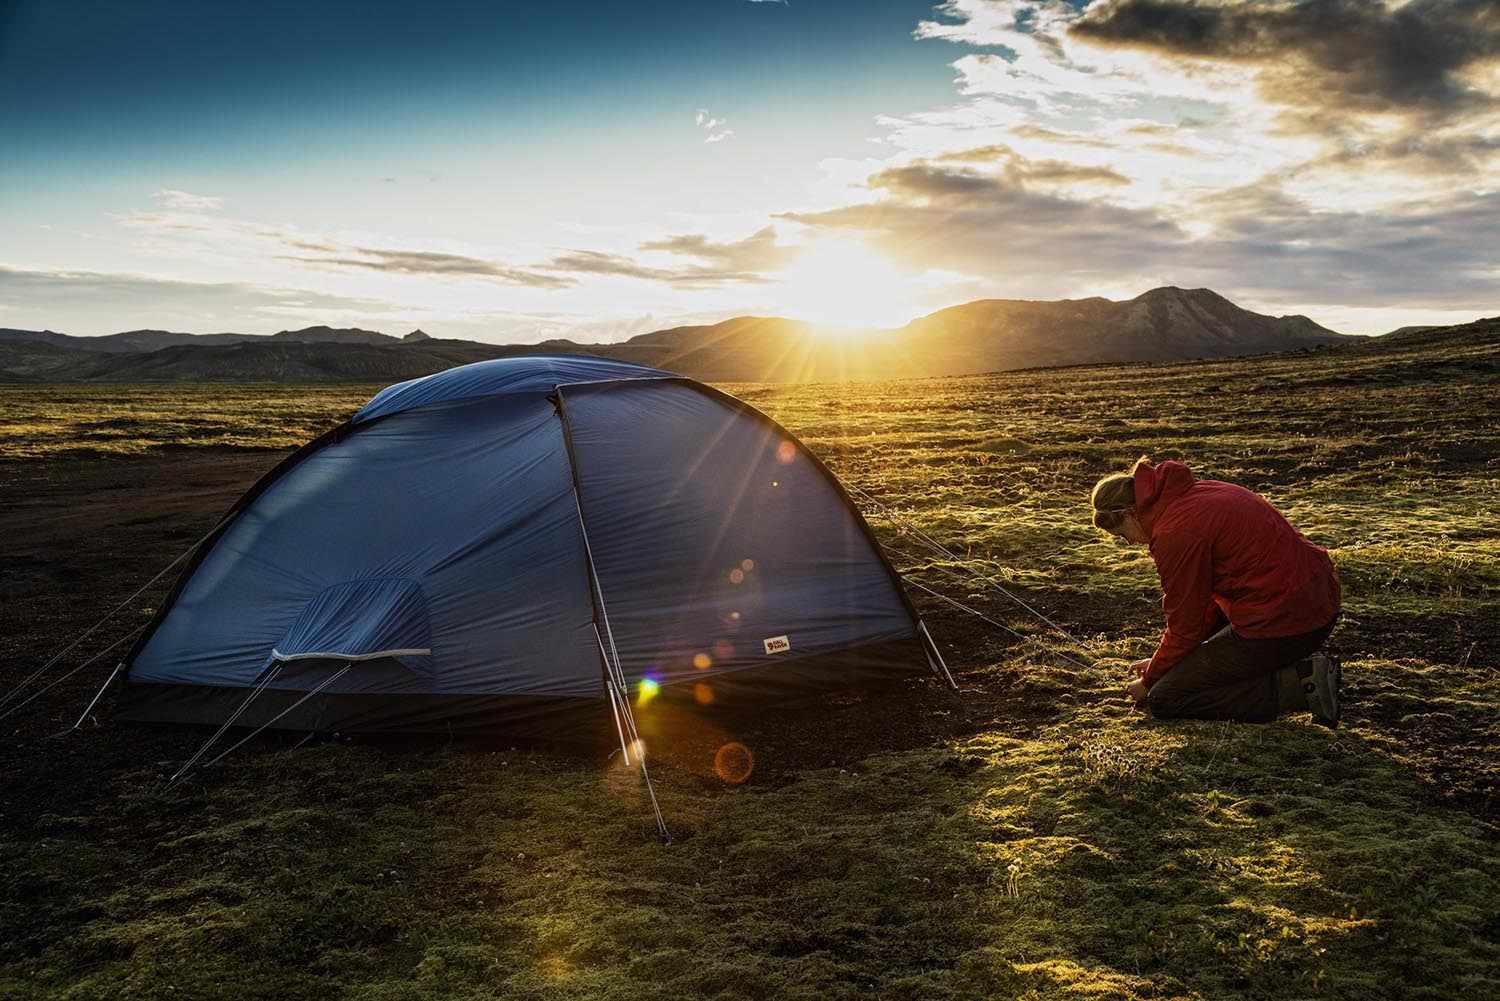 Sunset in the icelandic highlands